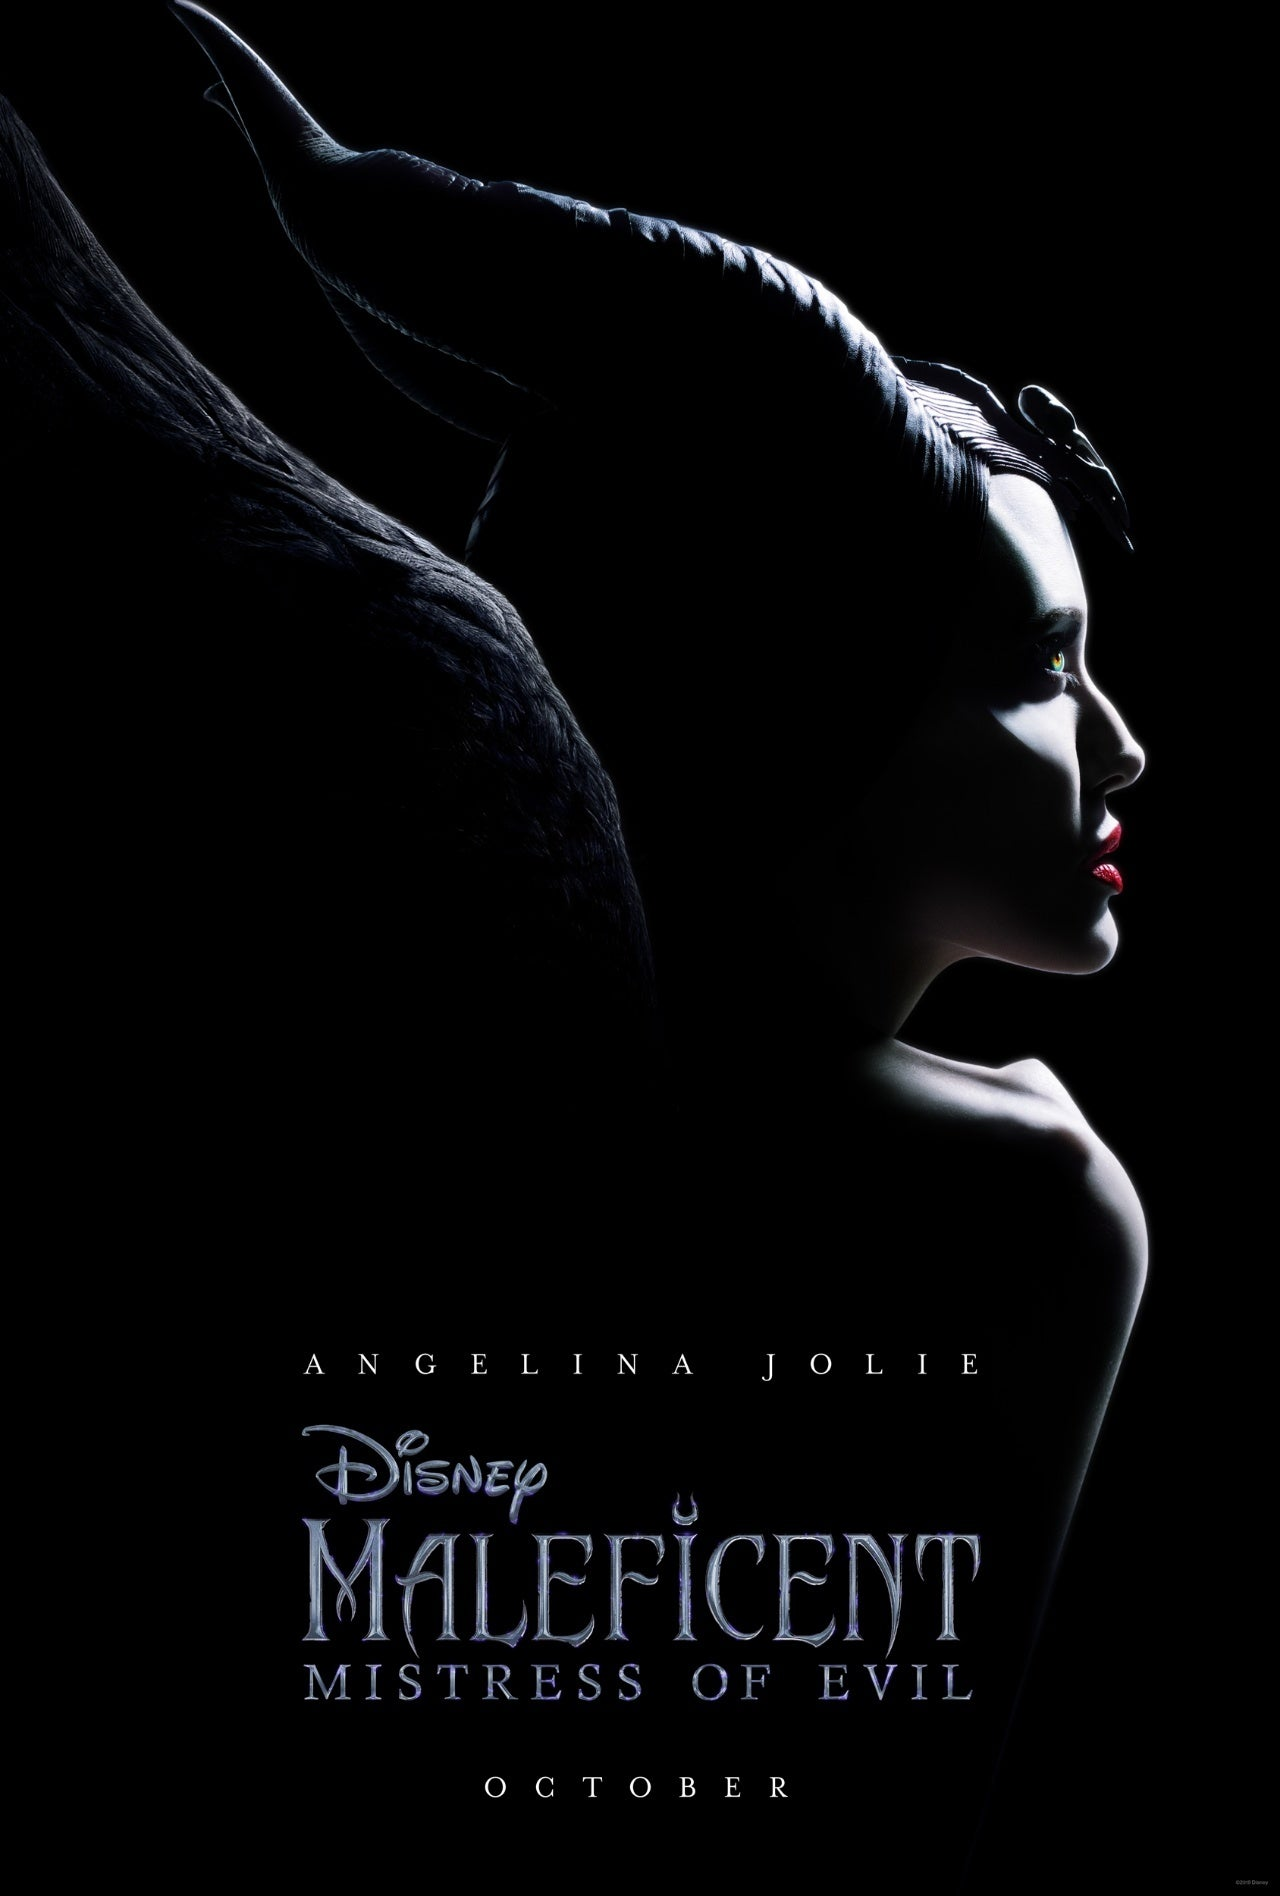 Disney S Maleficent 2 Poster Reveals New Title 2019